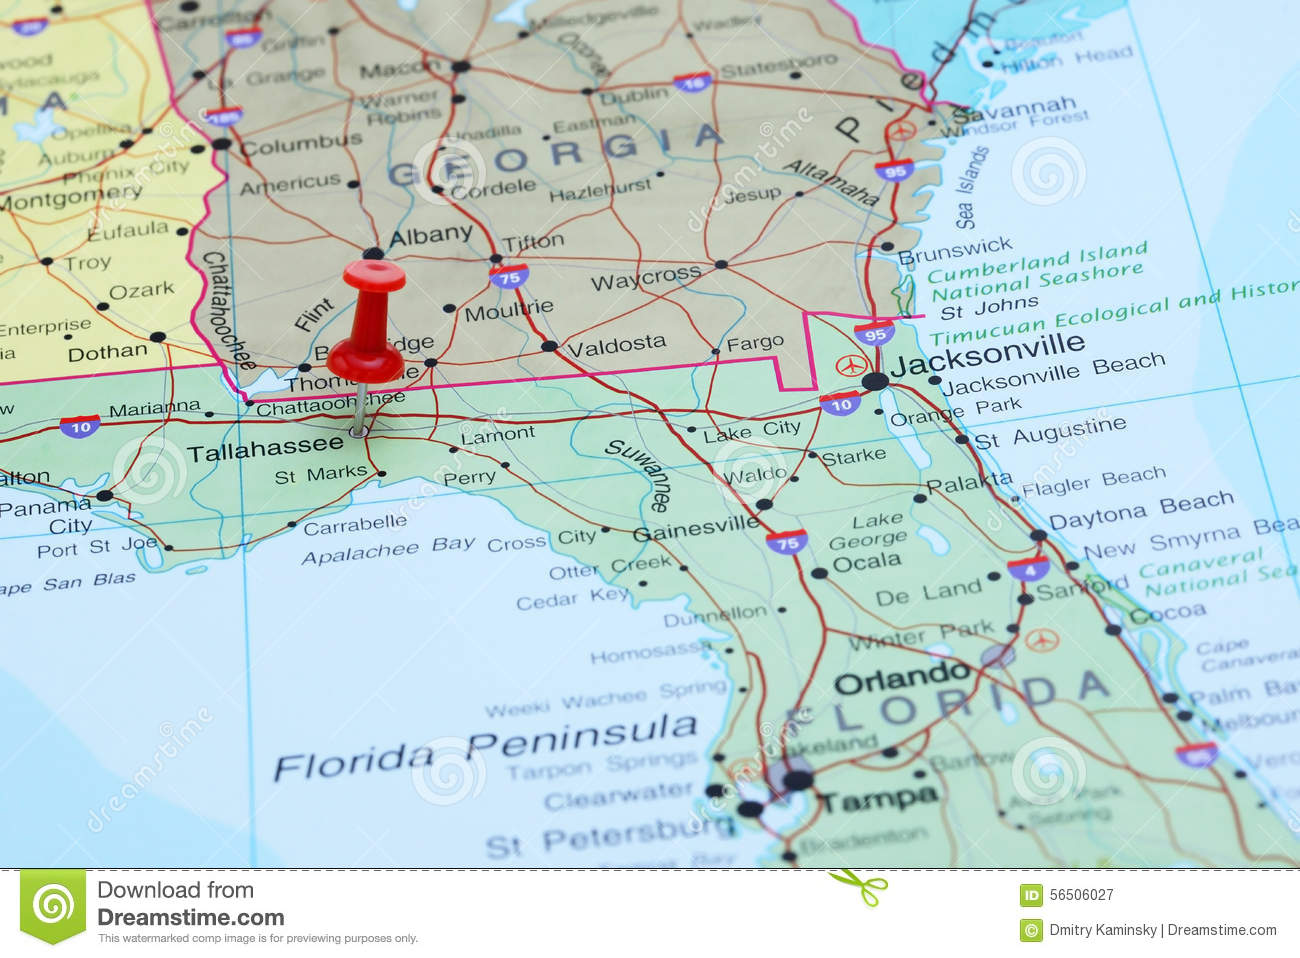 Tallahassee Pinned On A Map Of USA Stock Image - Image of pushpin ...